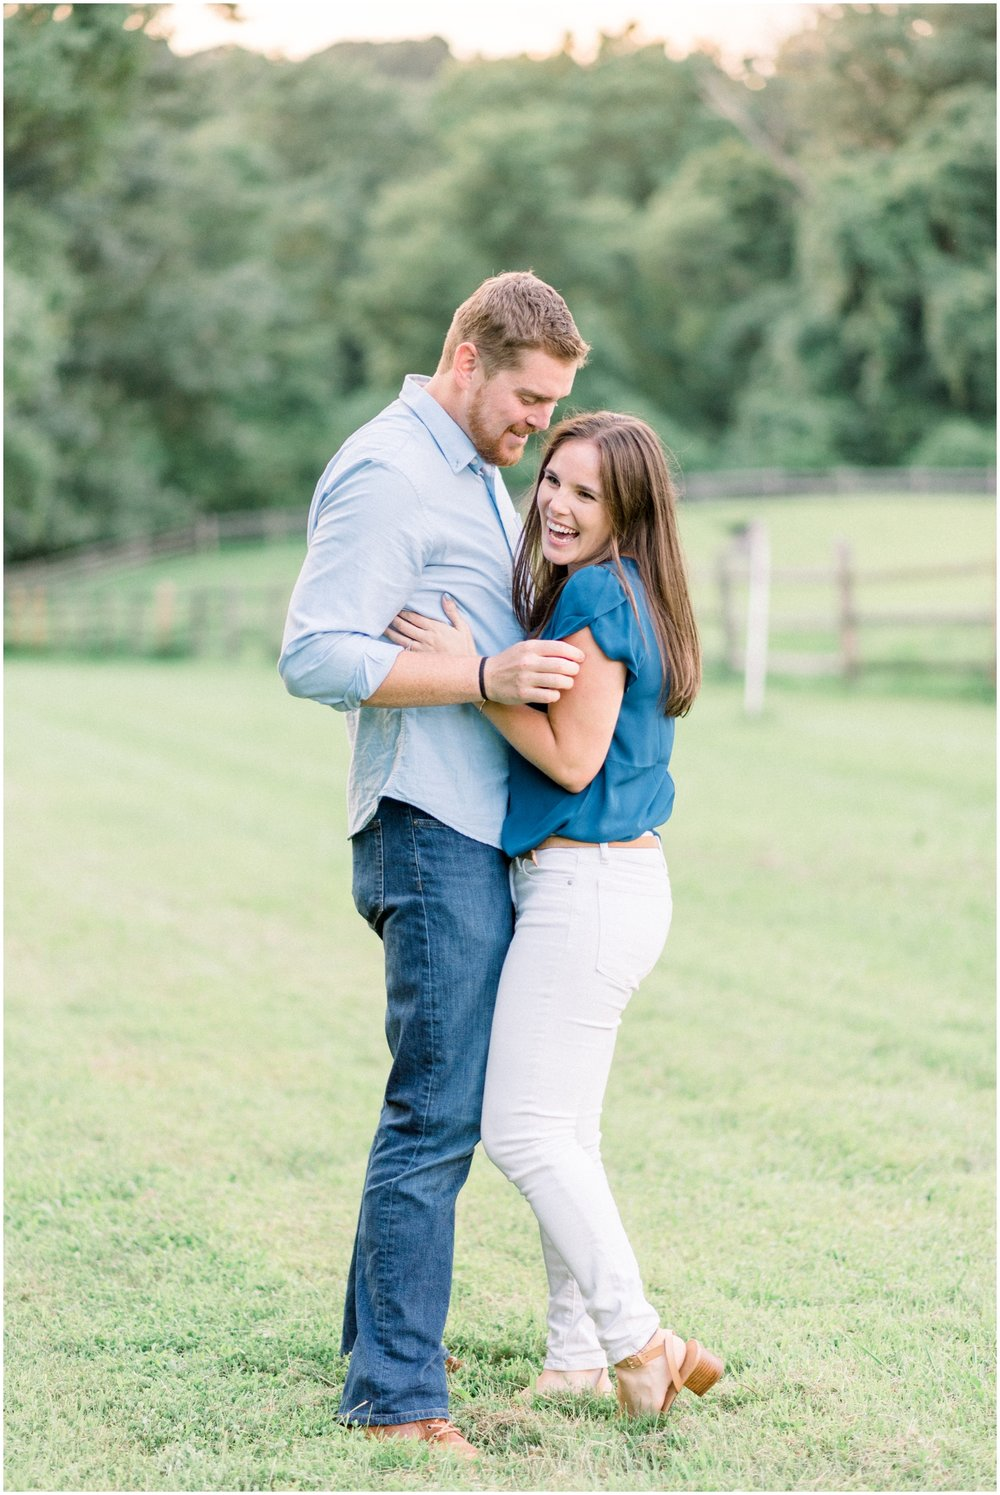 Summer Engagement Session at Hunting Hill Mansion - Krista Brackin Photography_0052.jpg